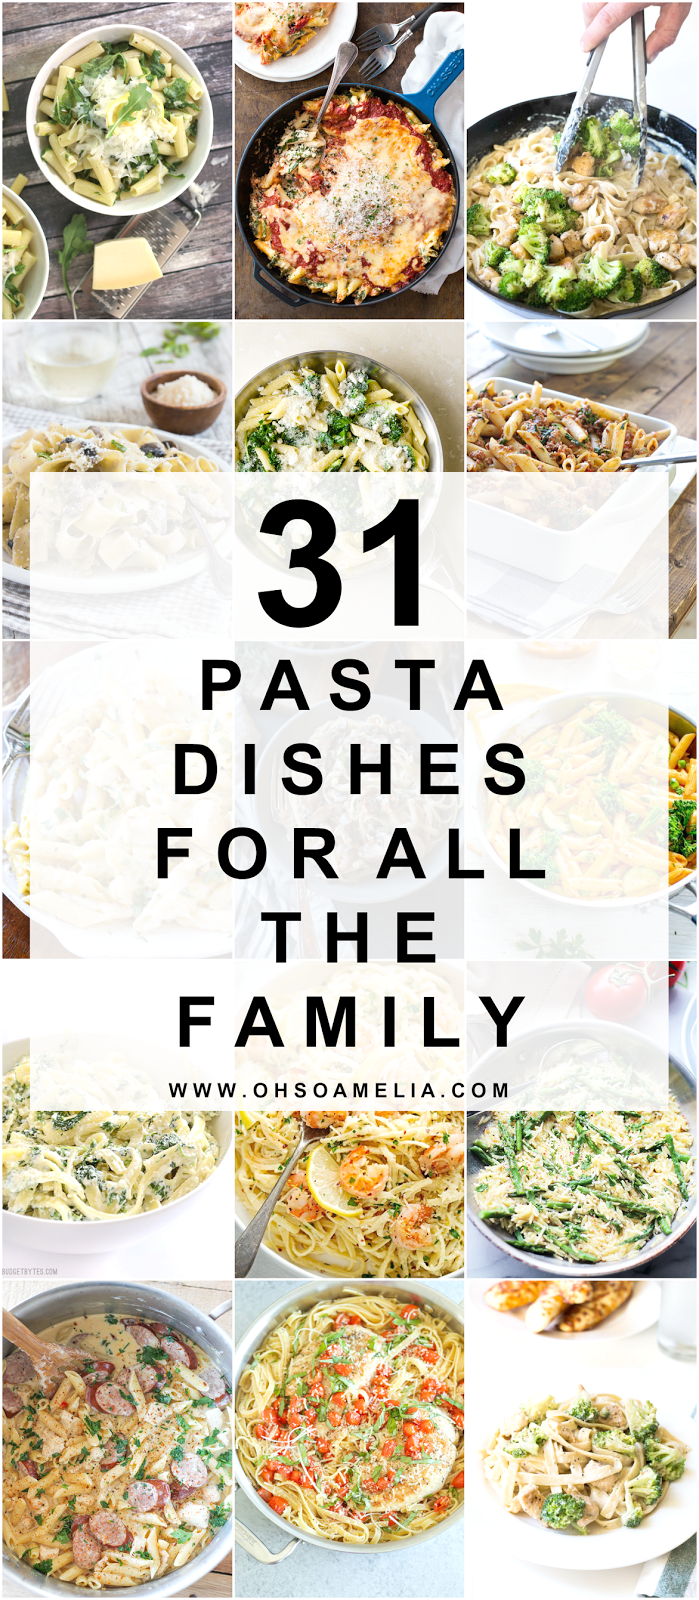 31 Pasta Dishes For All The Family